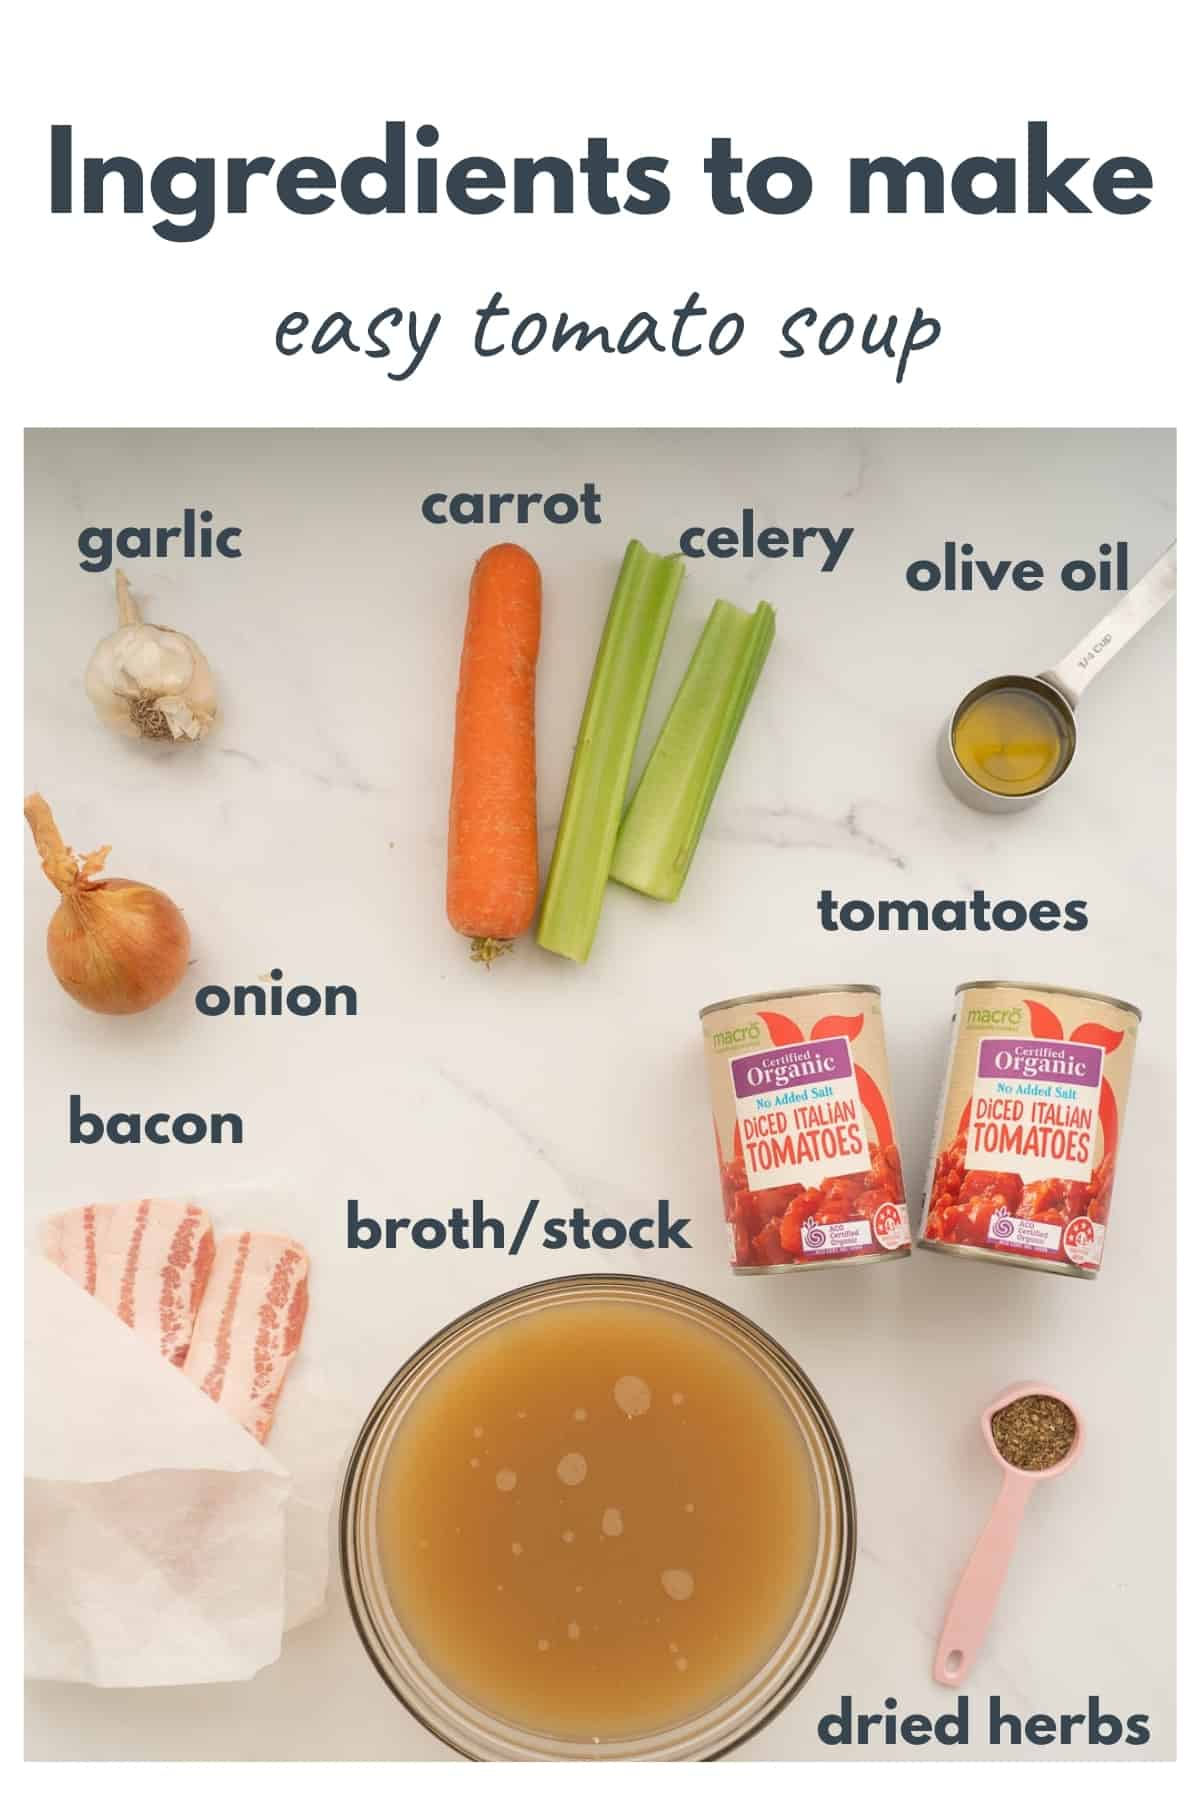 The ingredients to make easy tomato soup laid out on a bench top with text overlay.